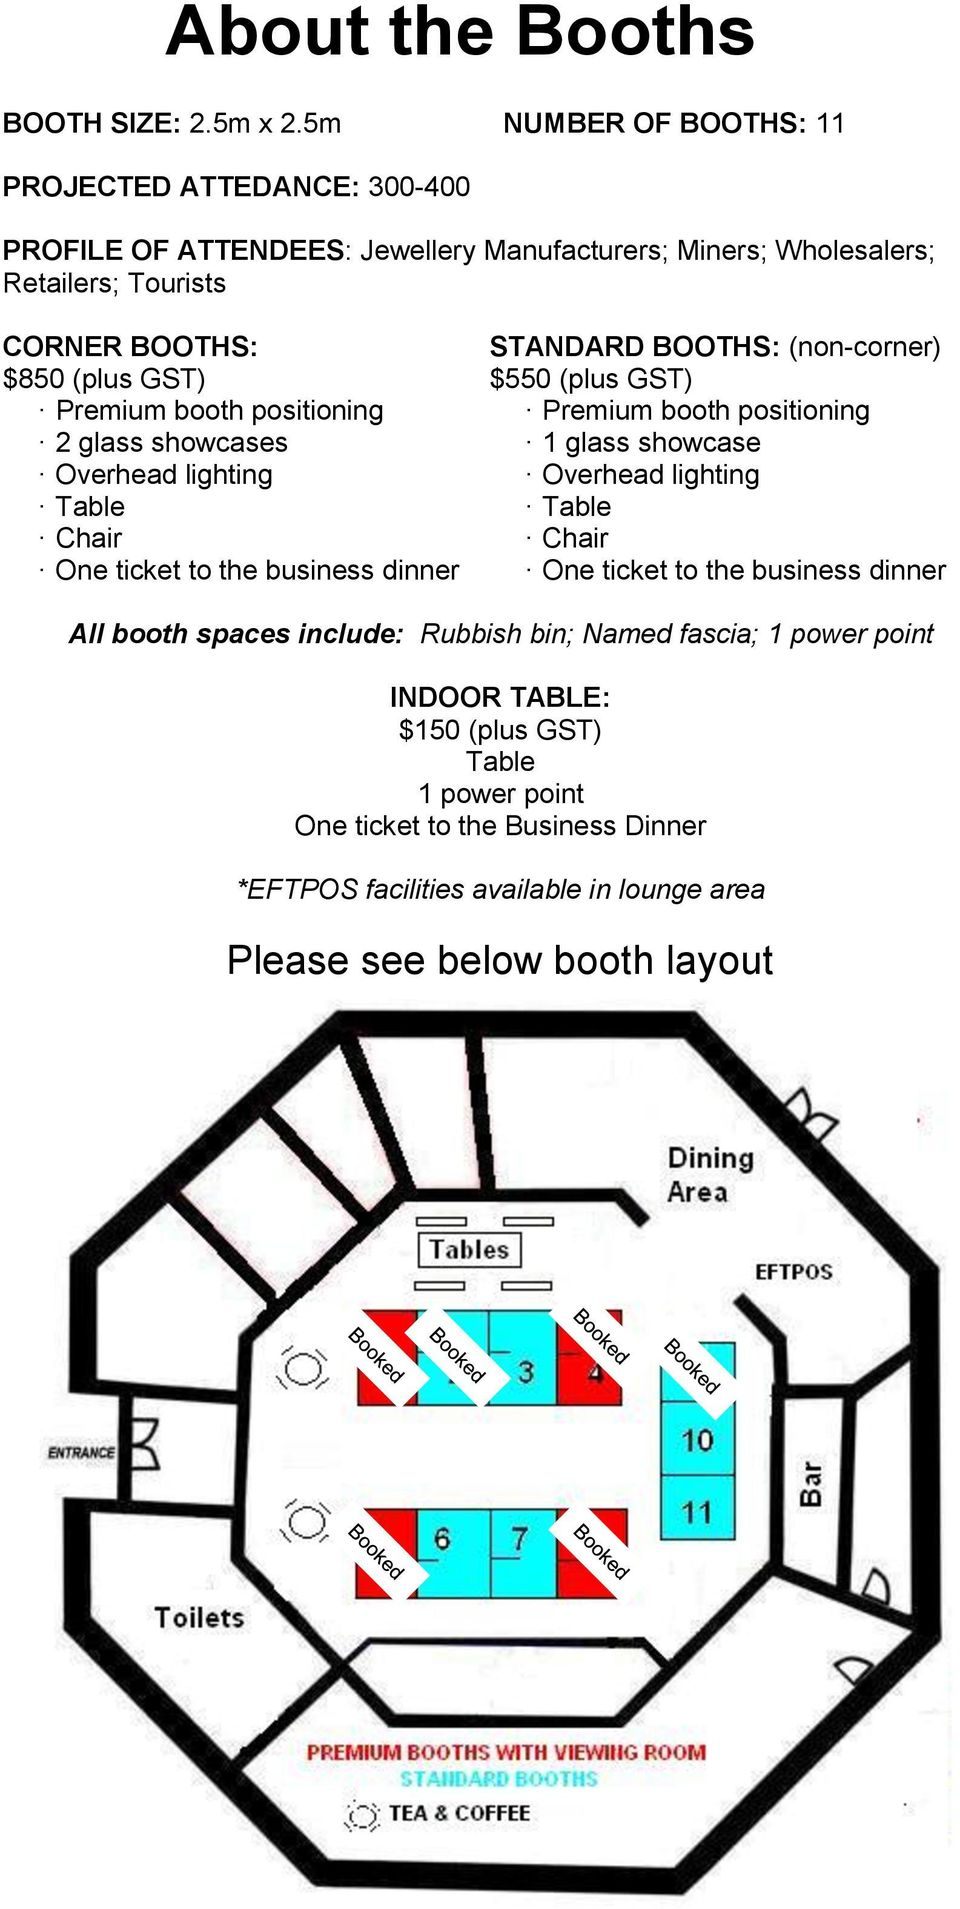 Premium booth positioning 2 glass showcases Overhead lighting Table Chair One ticket to the business dinner STANDARD BOOTHS: (non-corner) $550 (plus GST) Premium booth